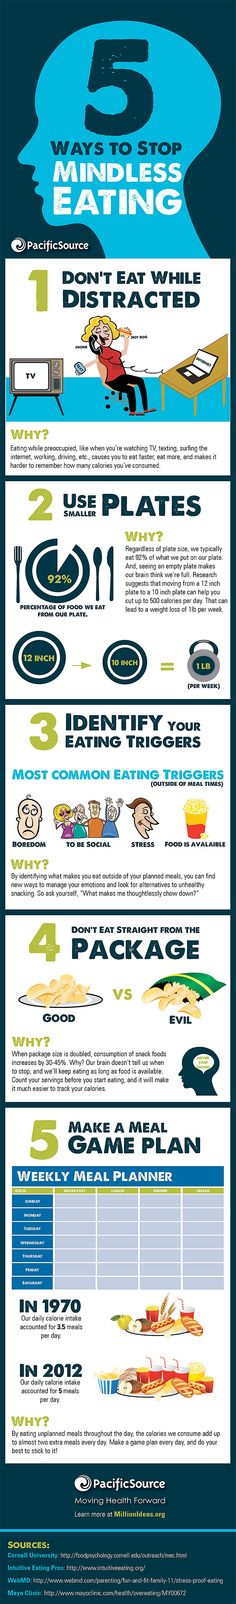 Infographic: 5 Ways To Stop Mindless Eating